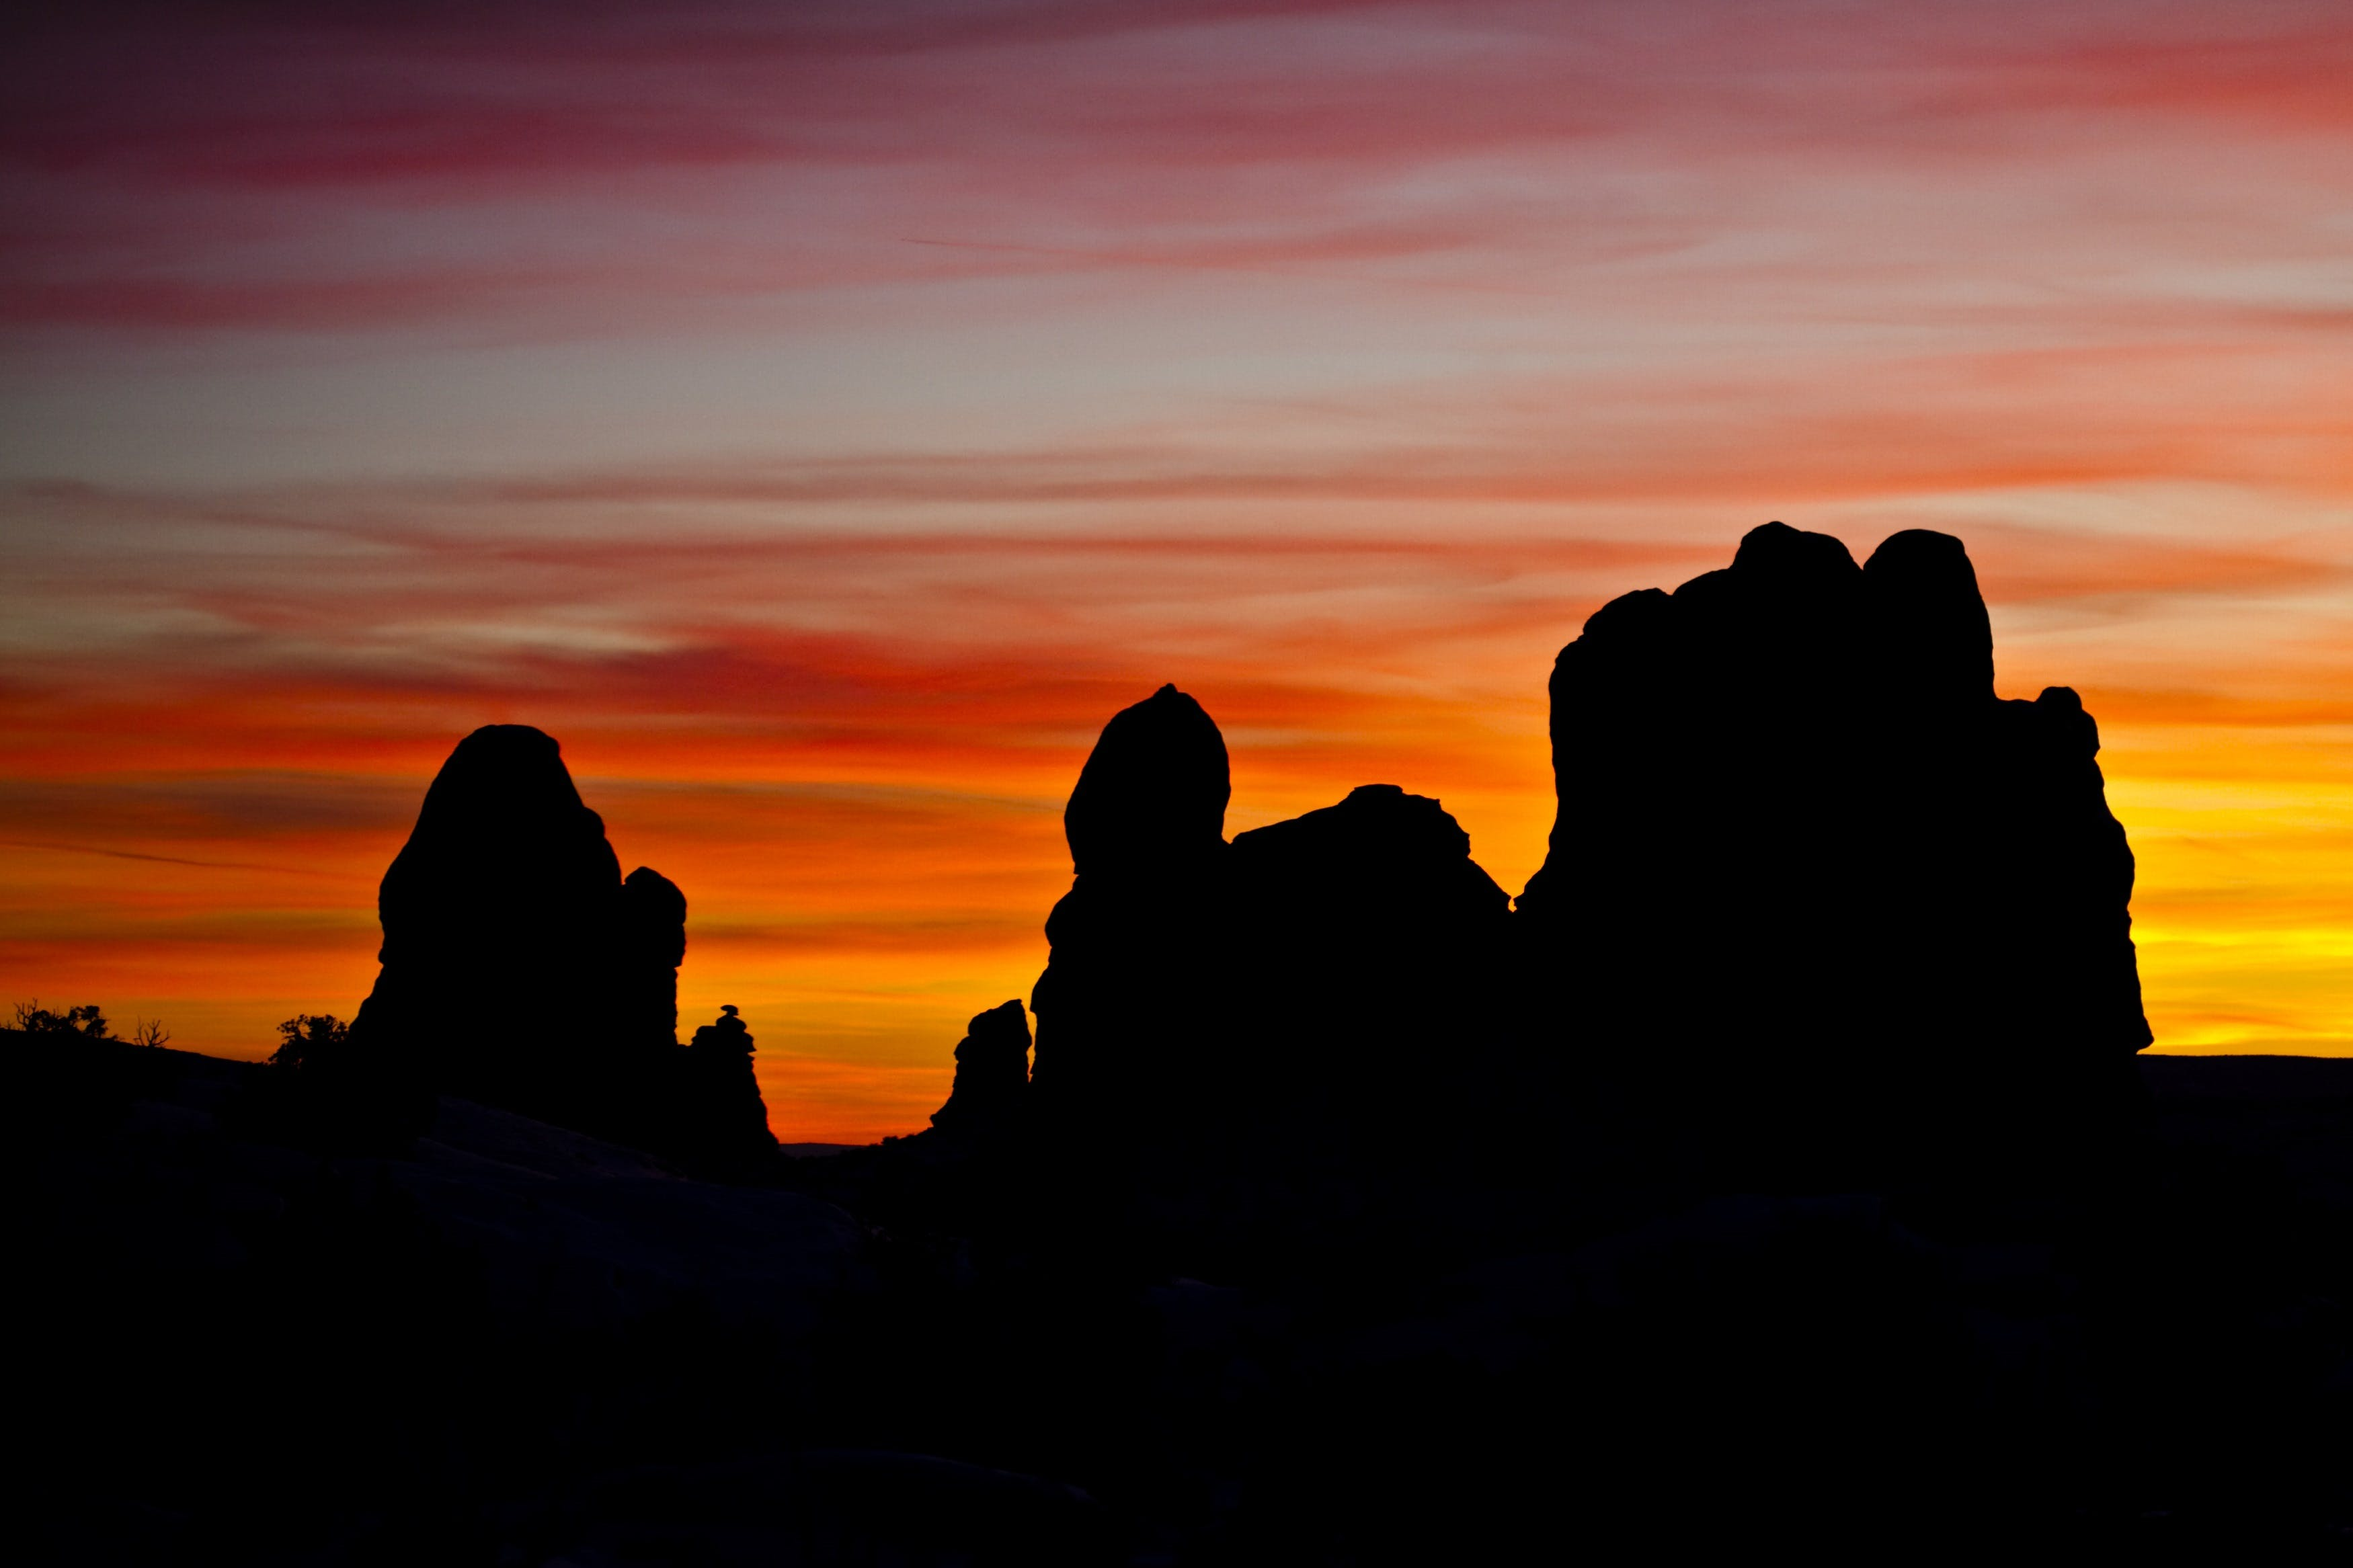 Silhouettes of Rock Formation during Sunset